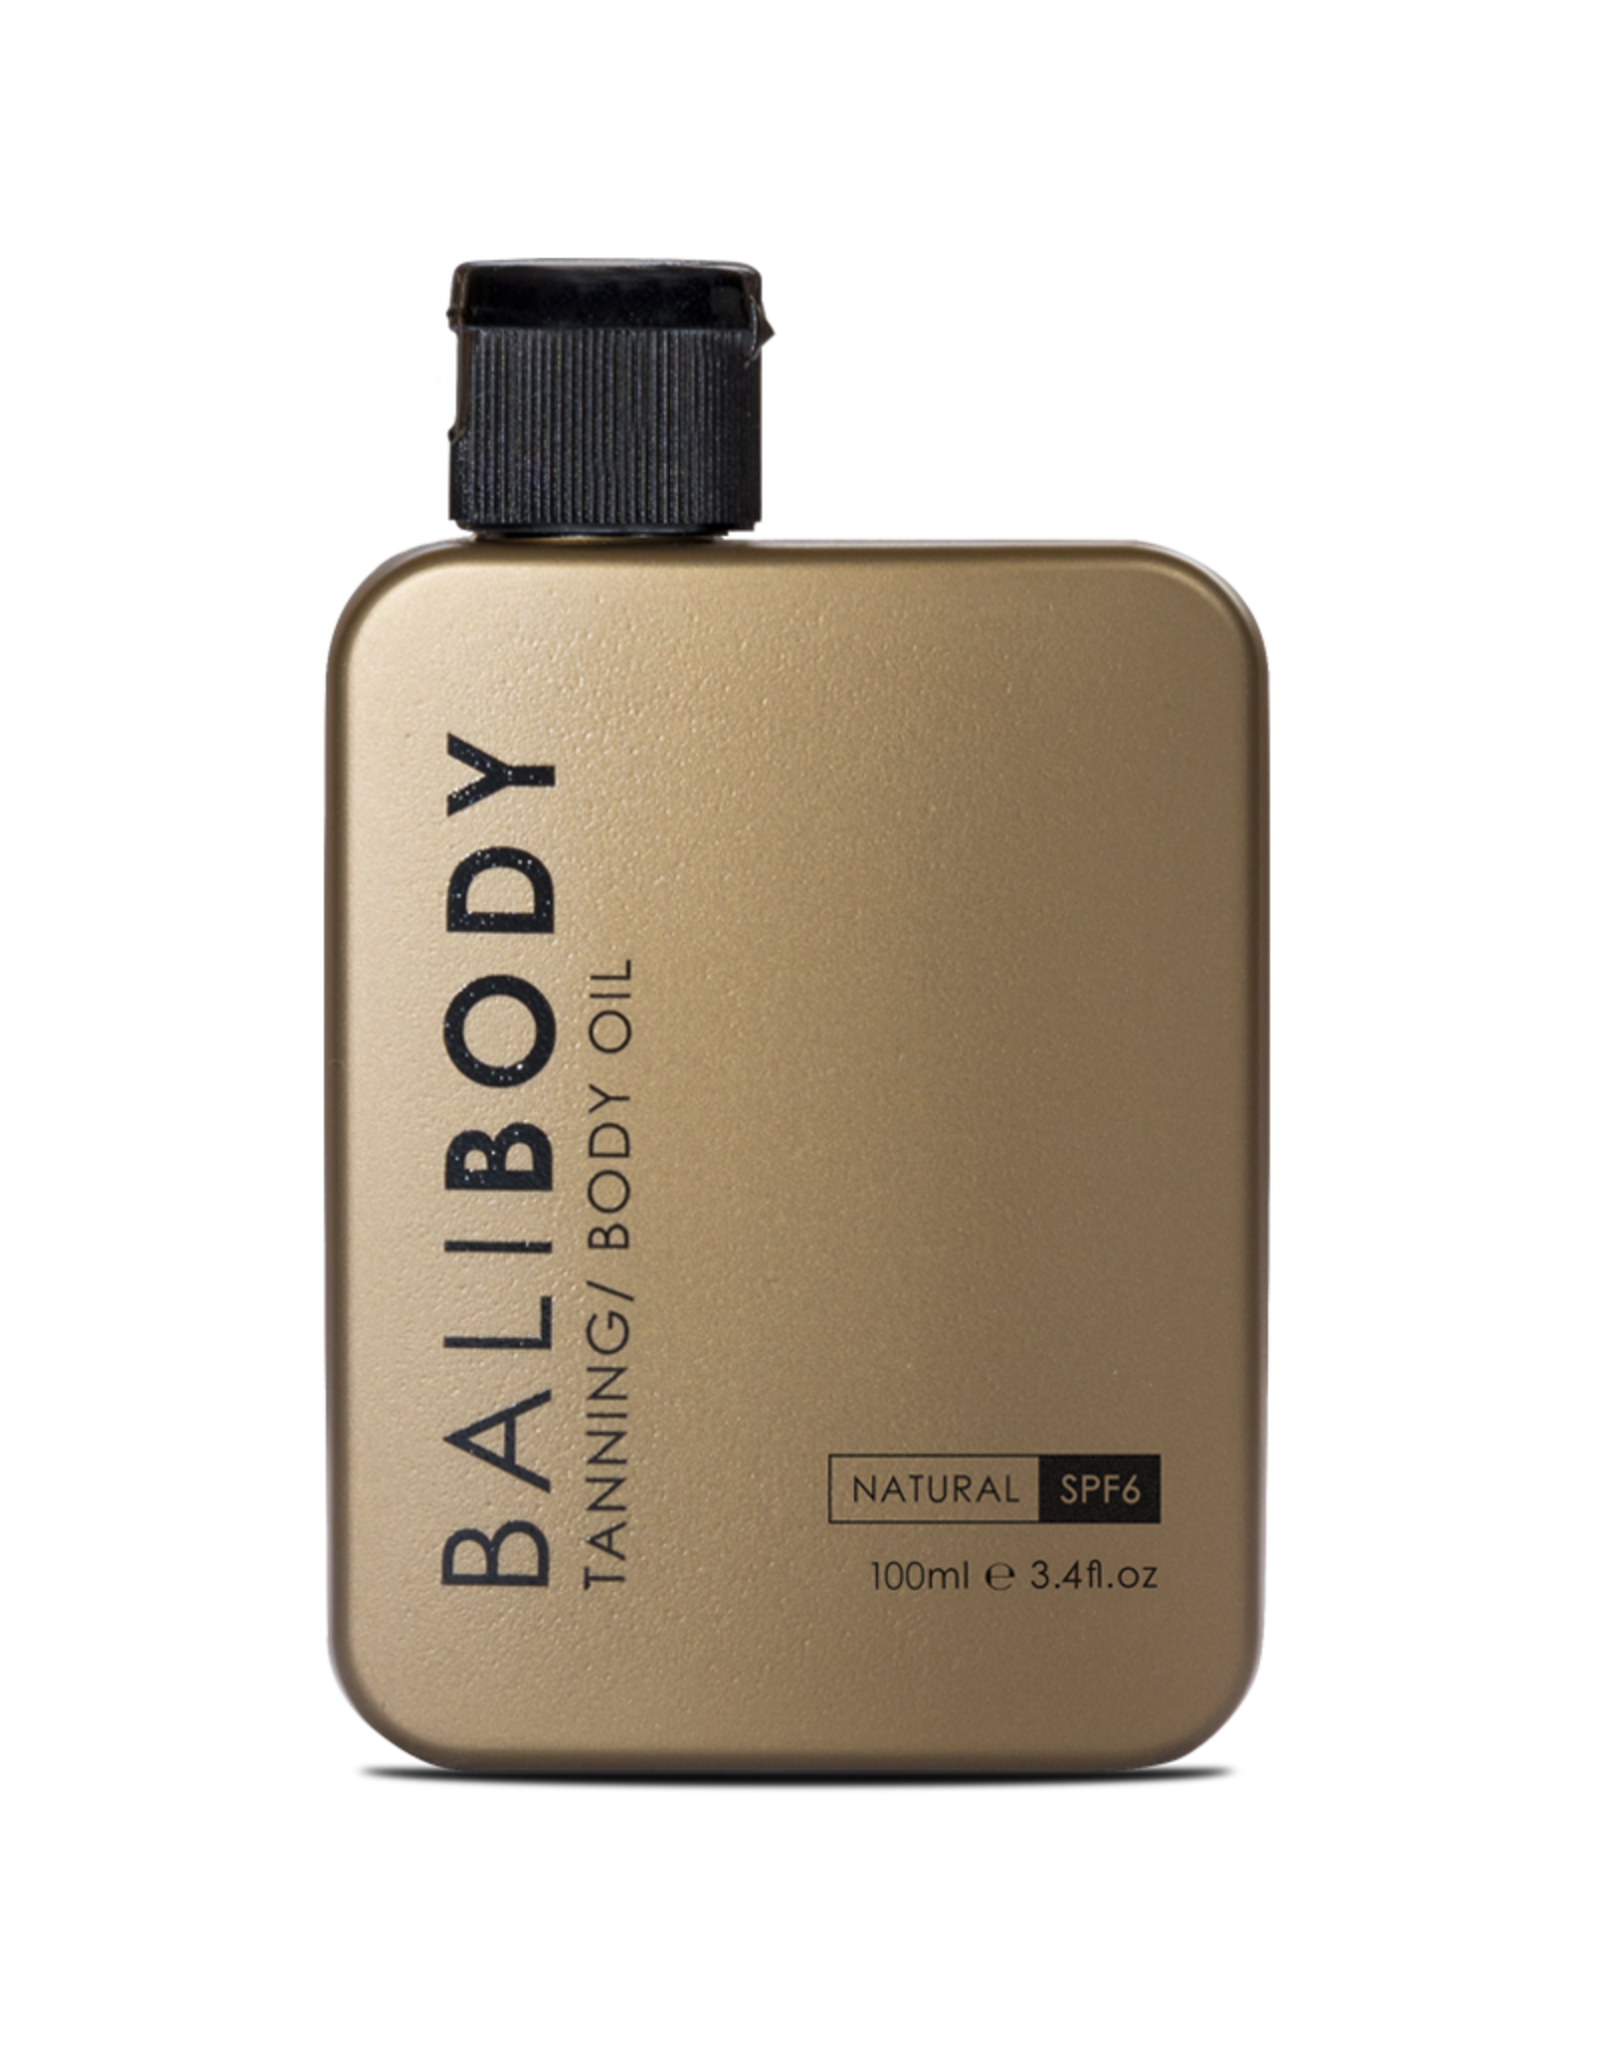 Bali Body Natural Tanning and Body Oil SPF 6